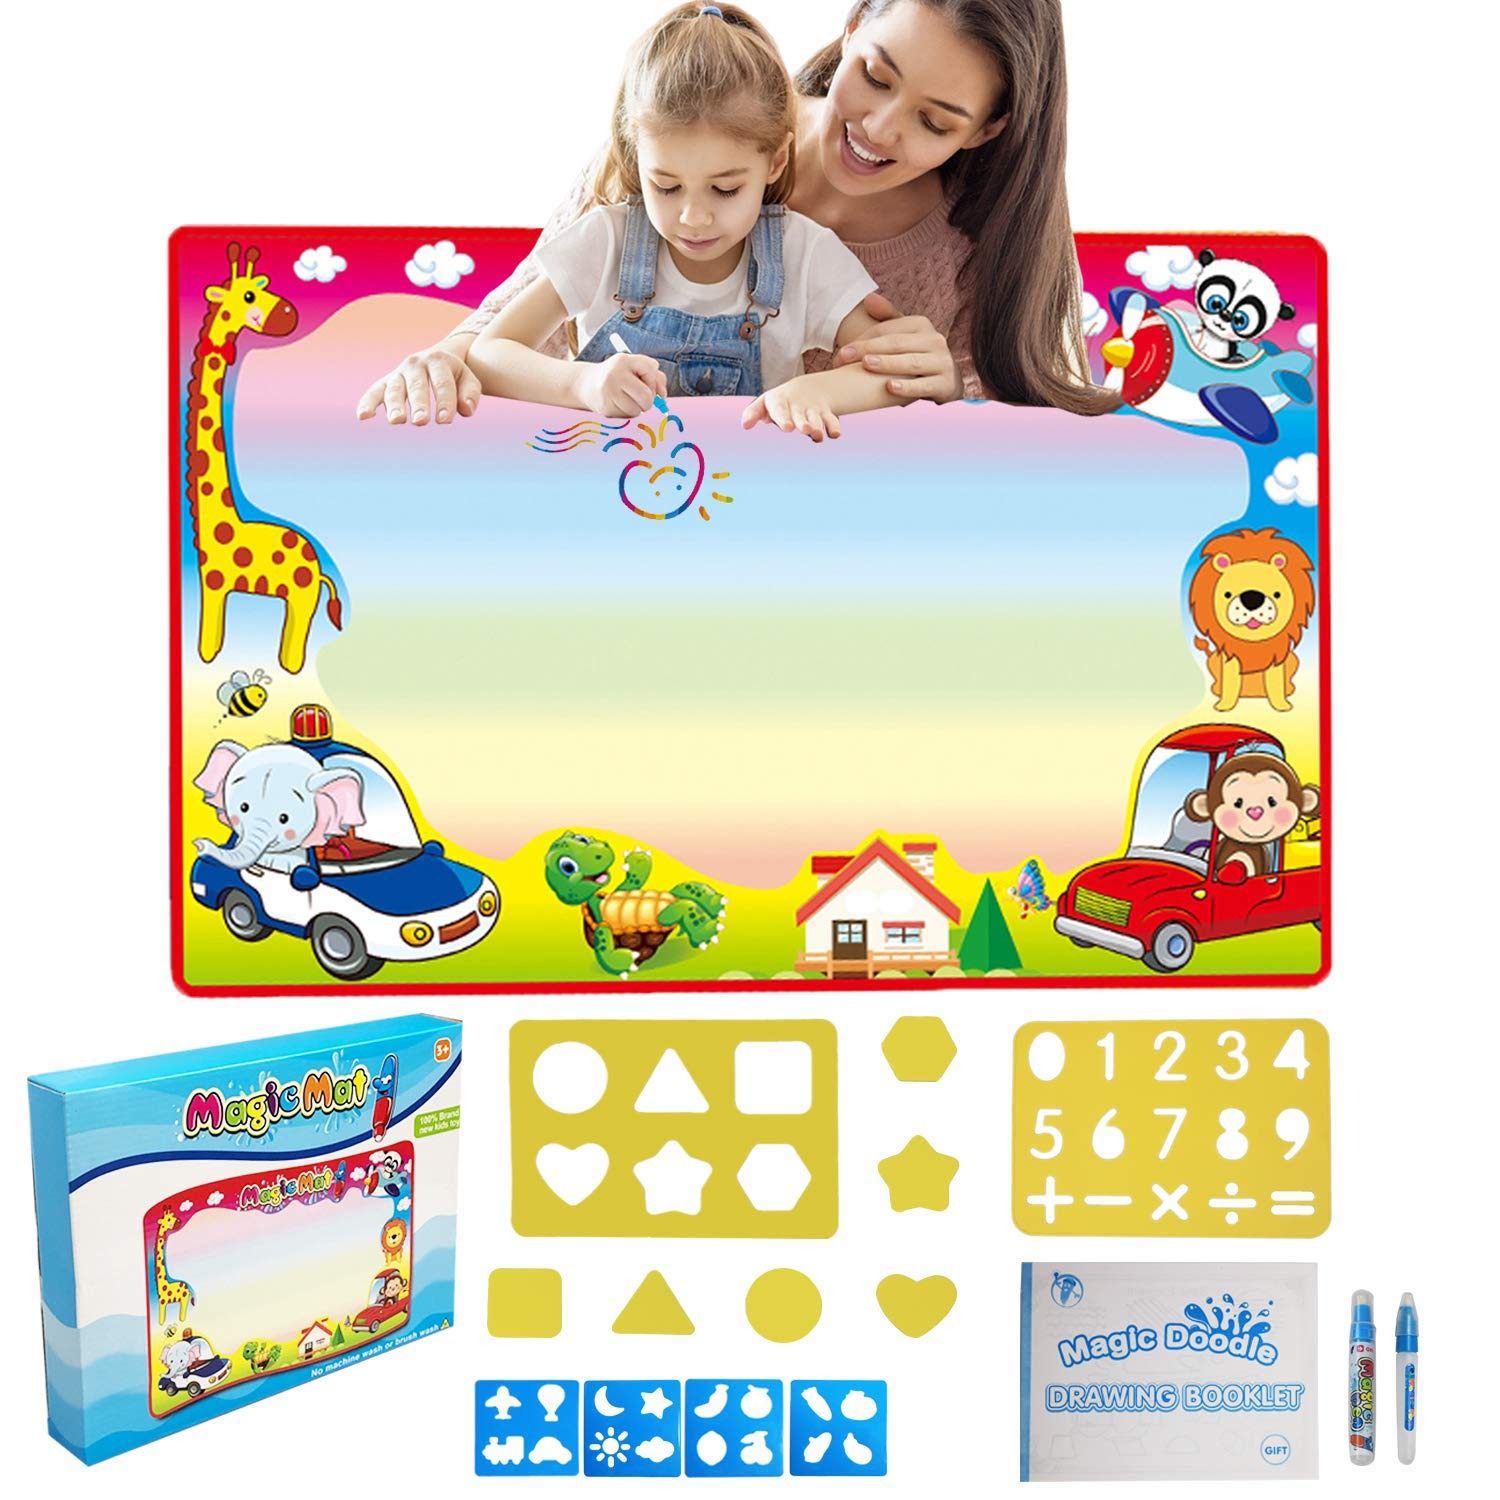 Aqua Drawing Mats for Toddlers, Water Doodle Mats 33.9×22.4 Inches Large, Kids Mess-Free Coloring Painting Writing Pad, Educational Toys Gifts for Children Boys Girls Age 2 3 4 5 6 7 8 Years Old